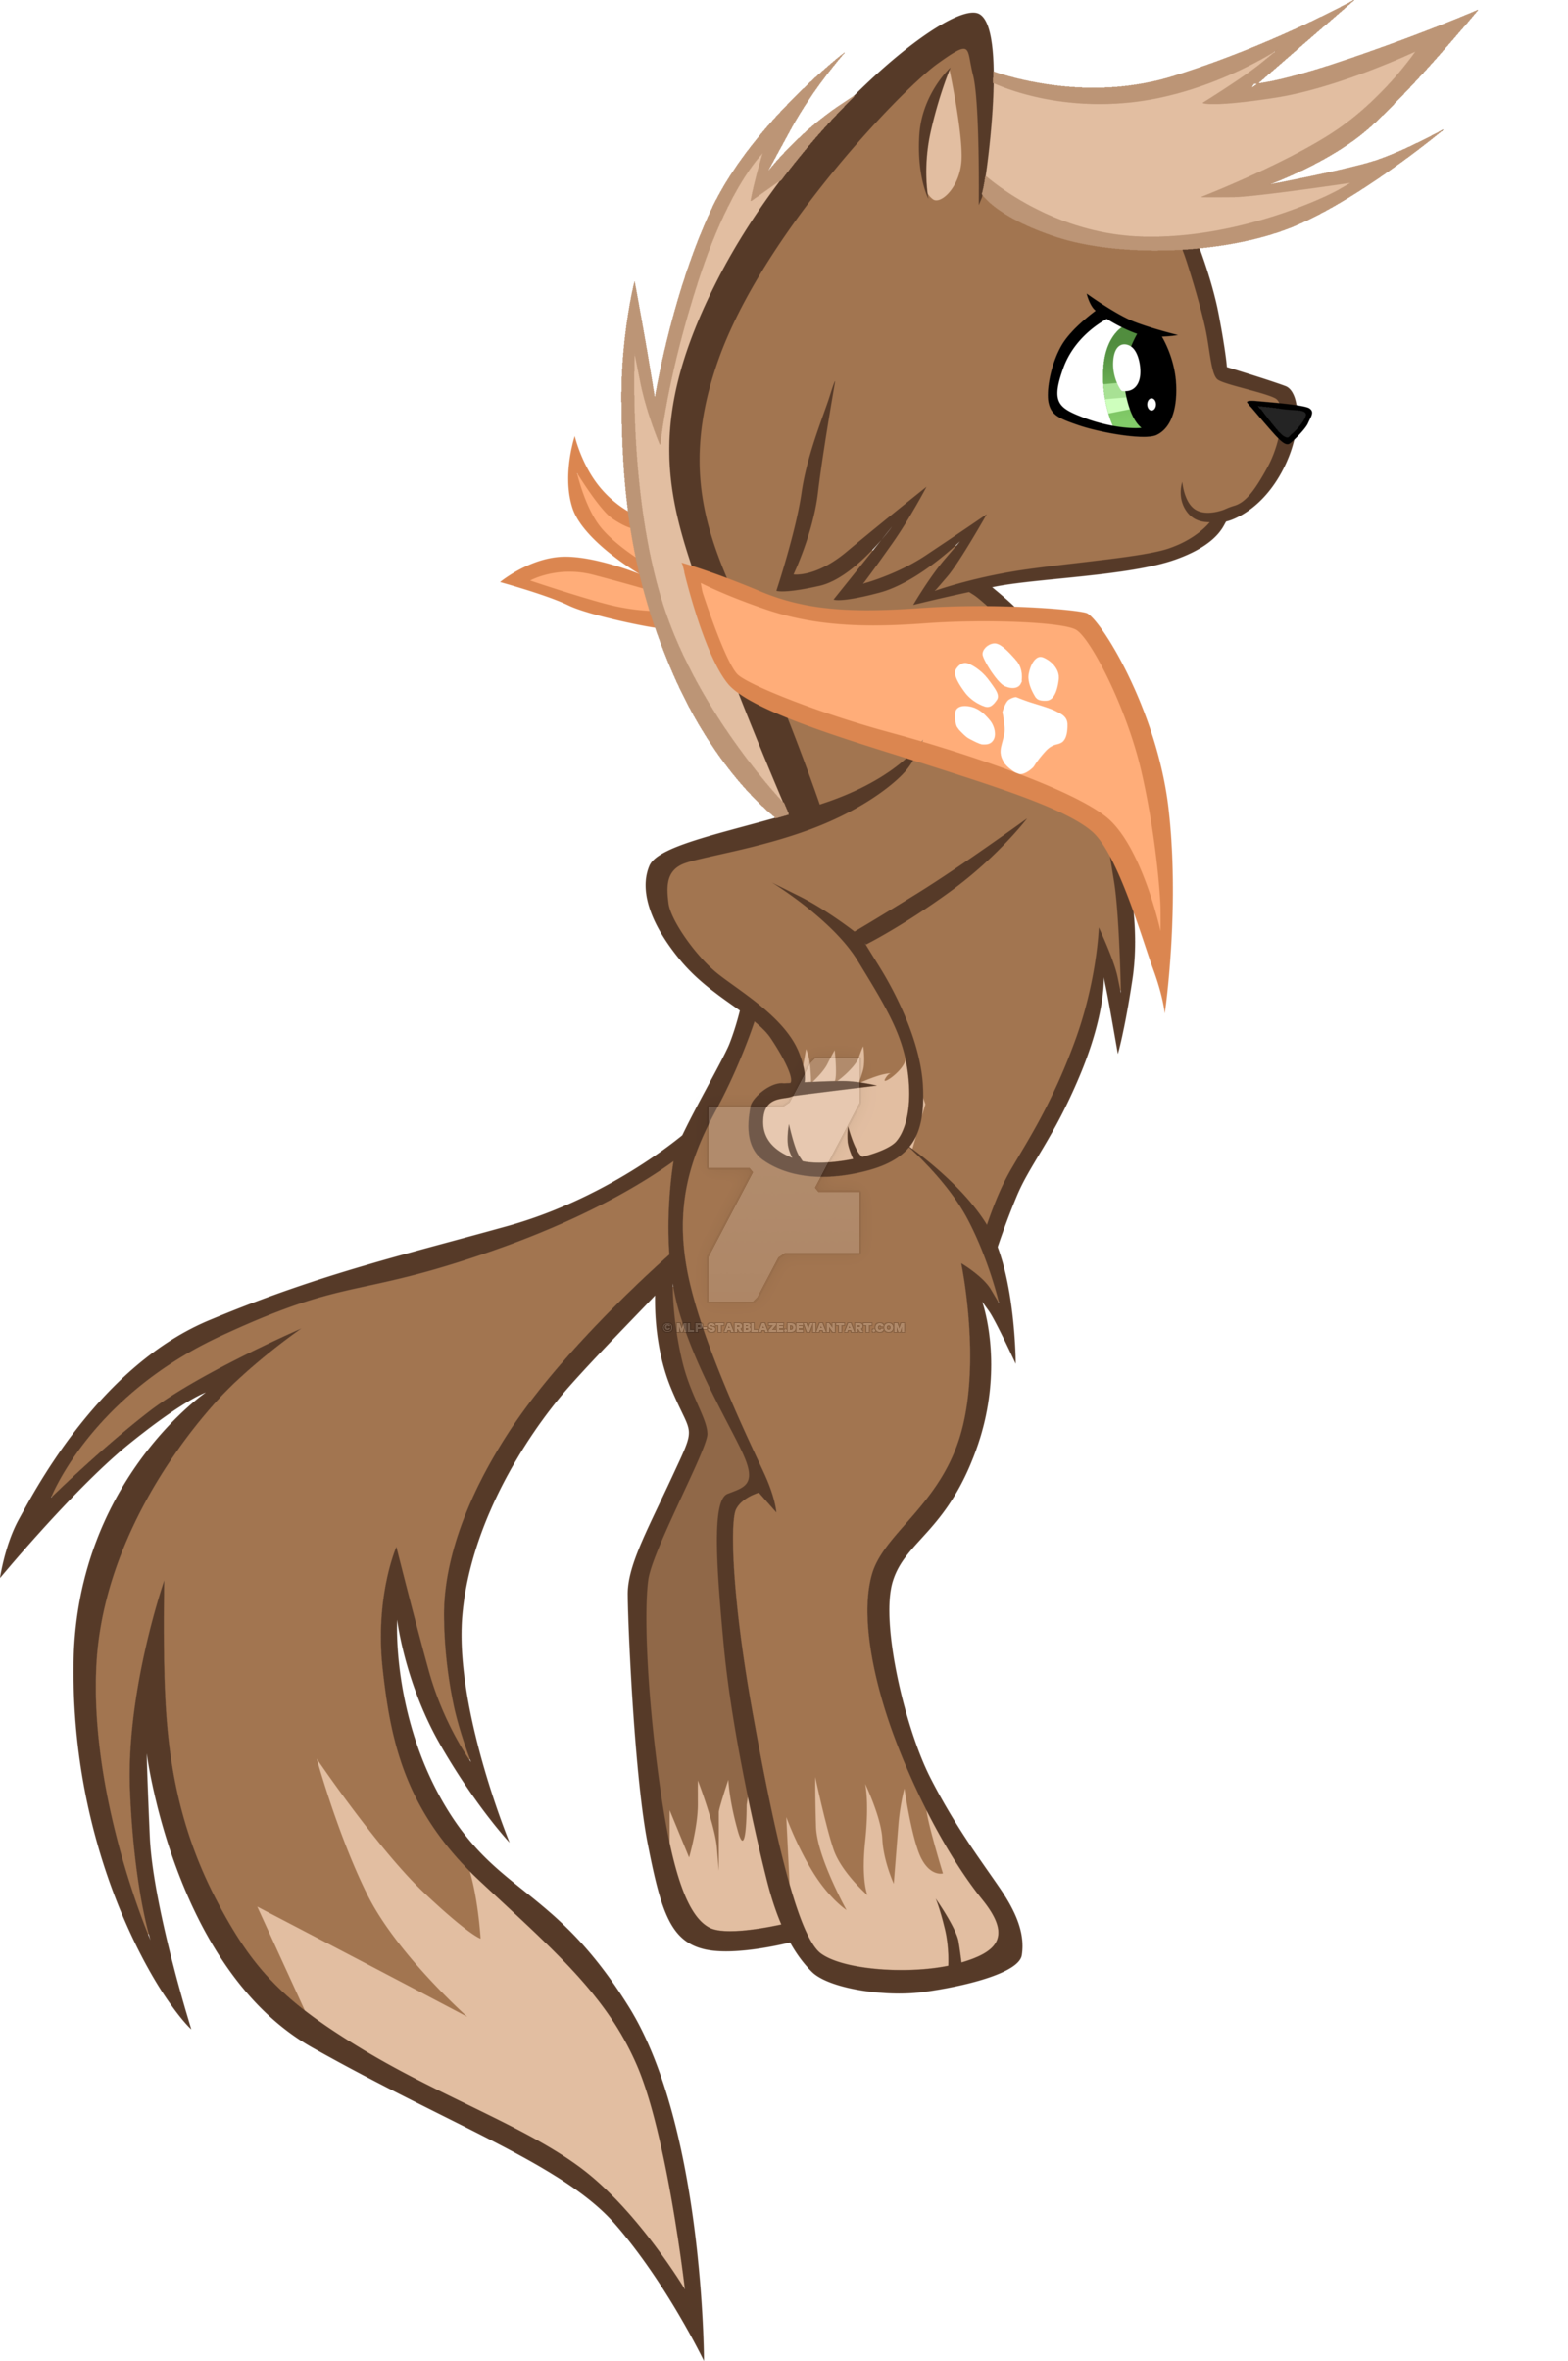 Ferret vector mlp dog. Oscar lyra stormflight s